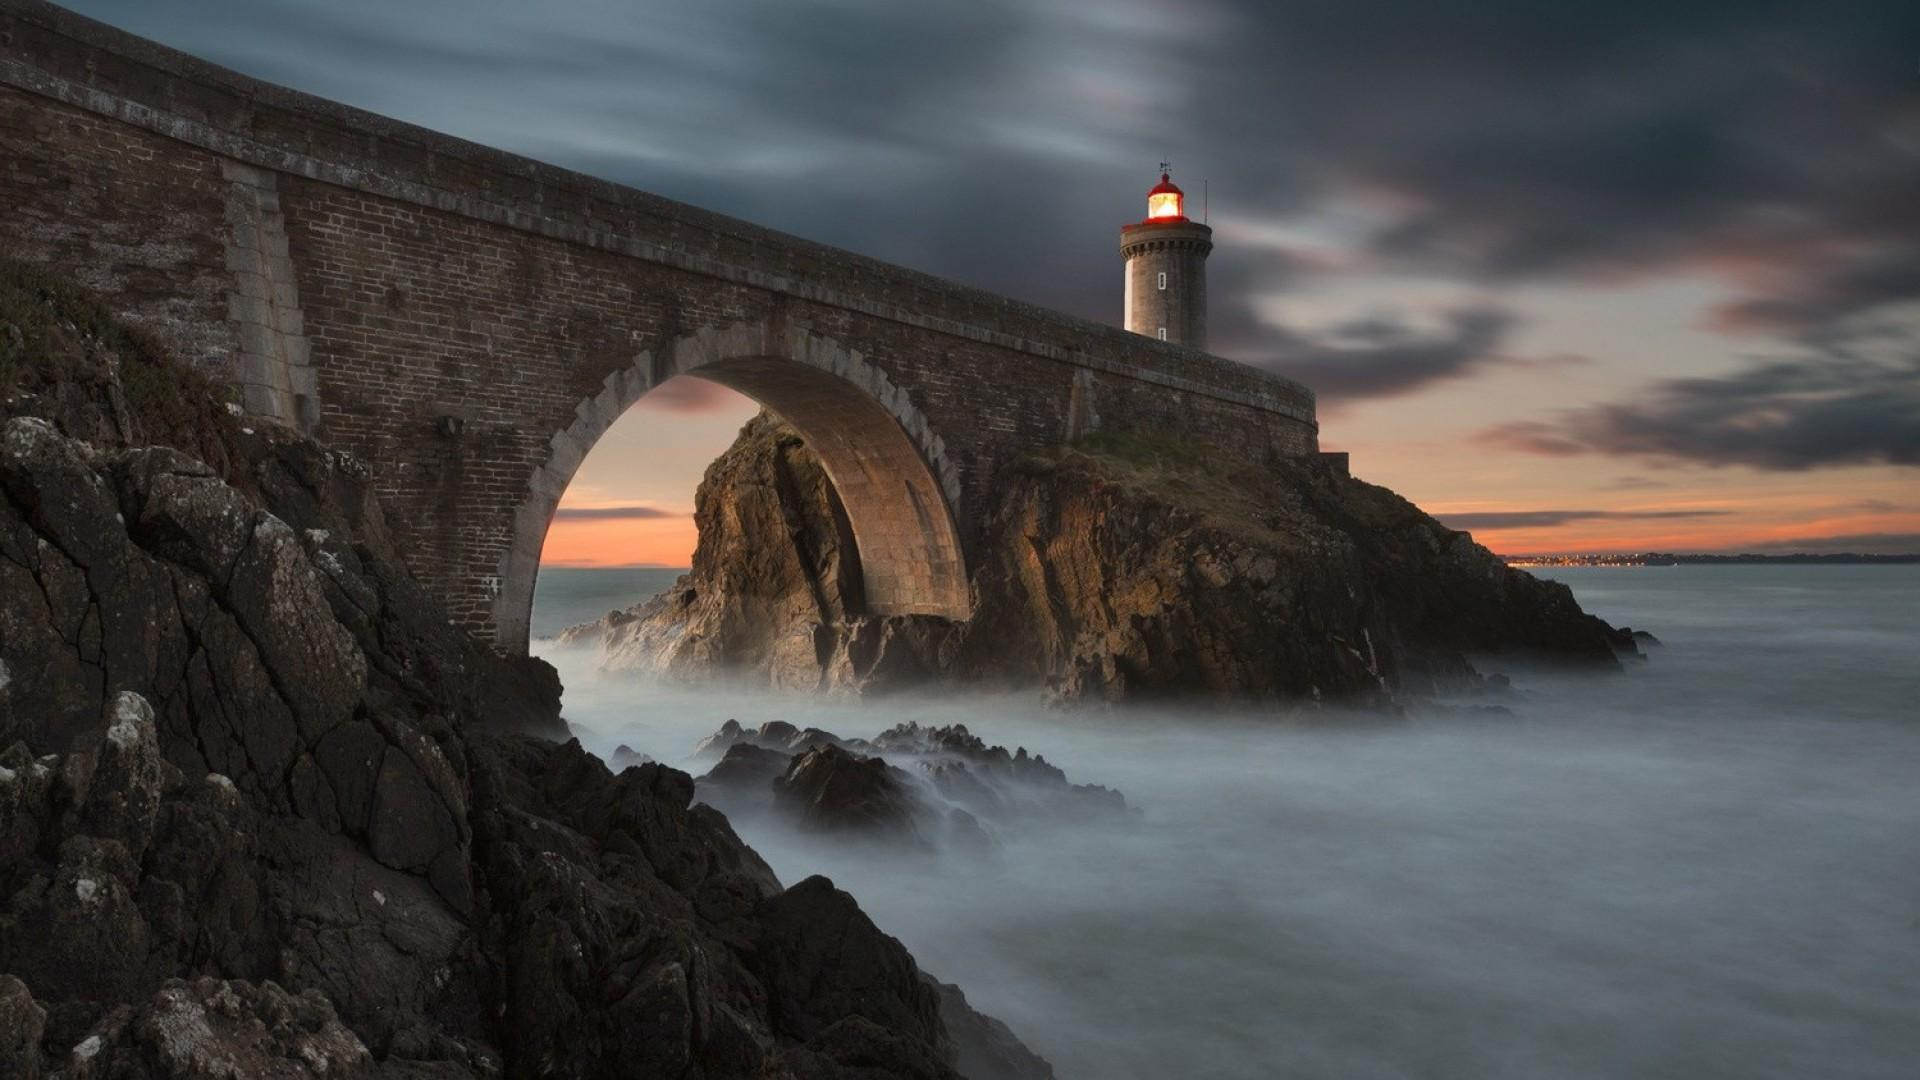 Lighthouse Storm Hd Wallpaper For Android Apk Download